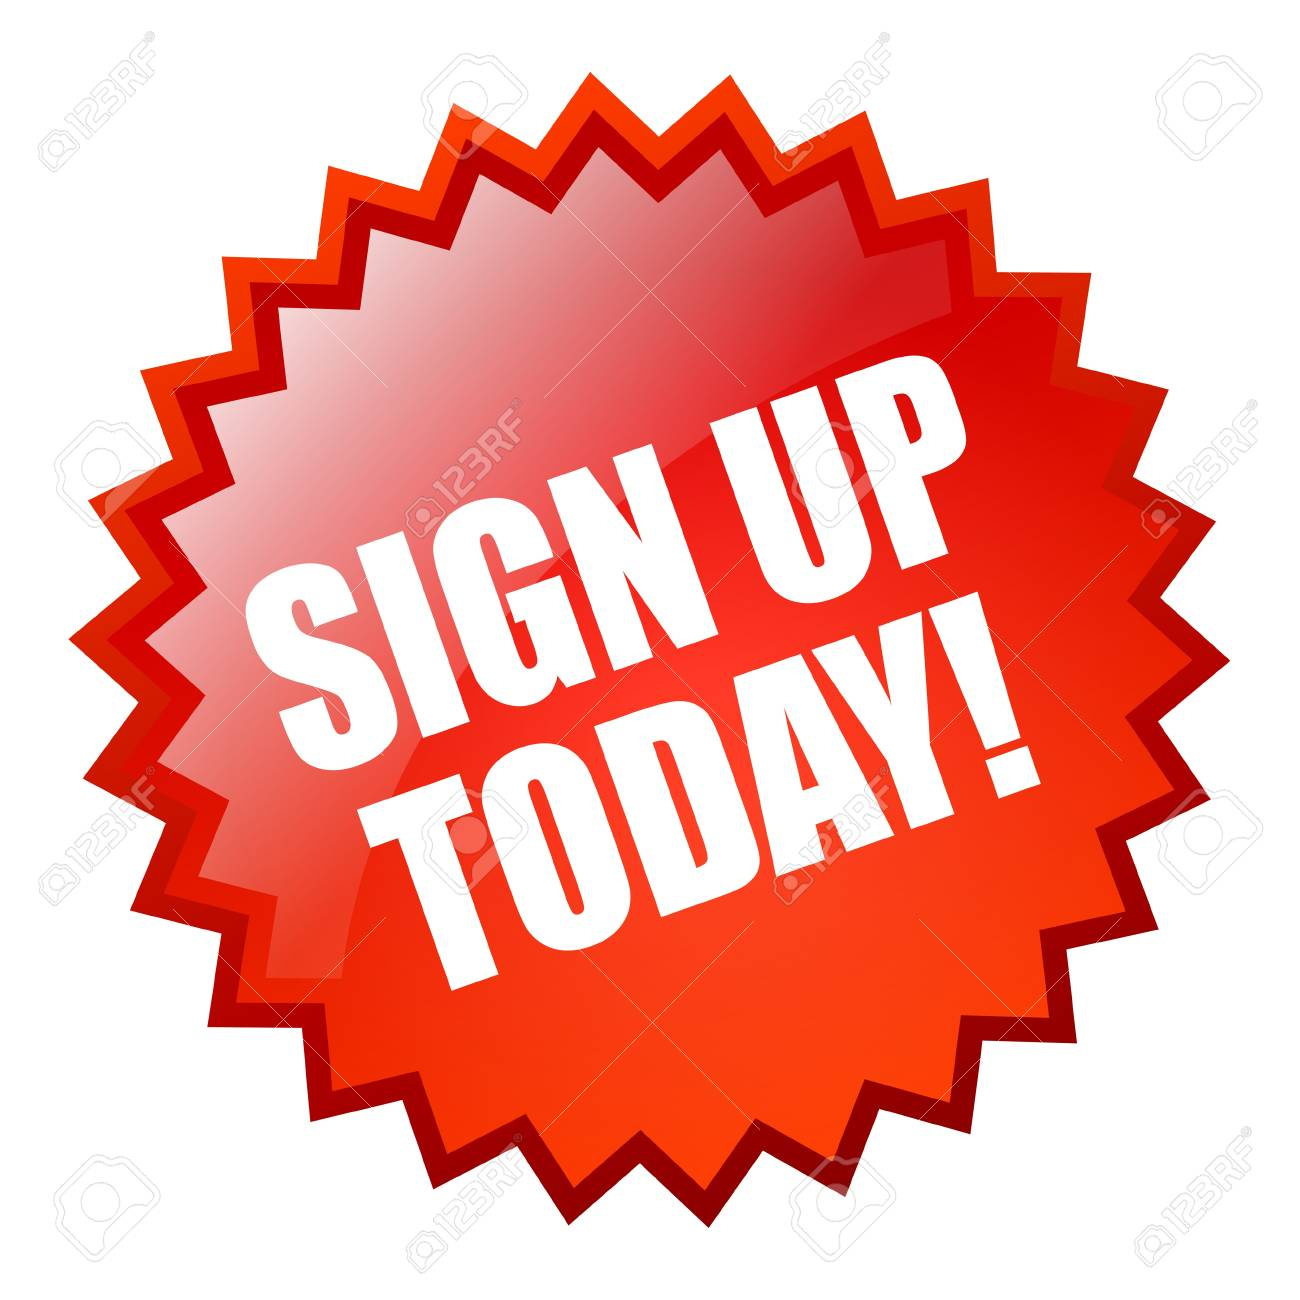 Sign up Sign in Sign up Vector Sign up Icon